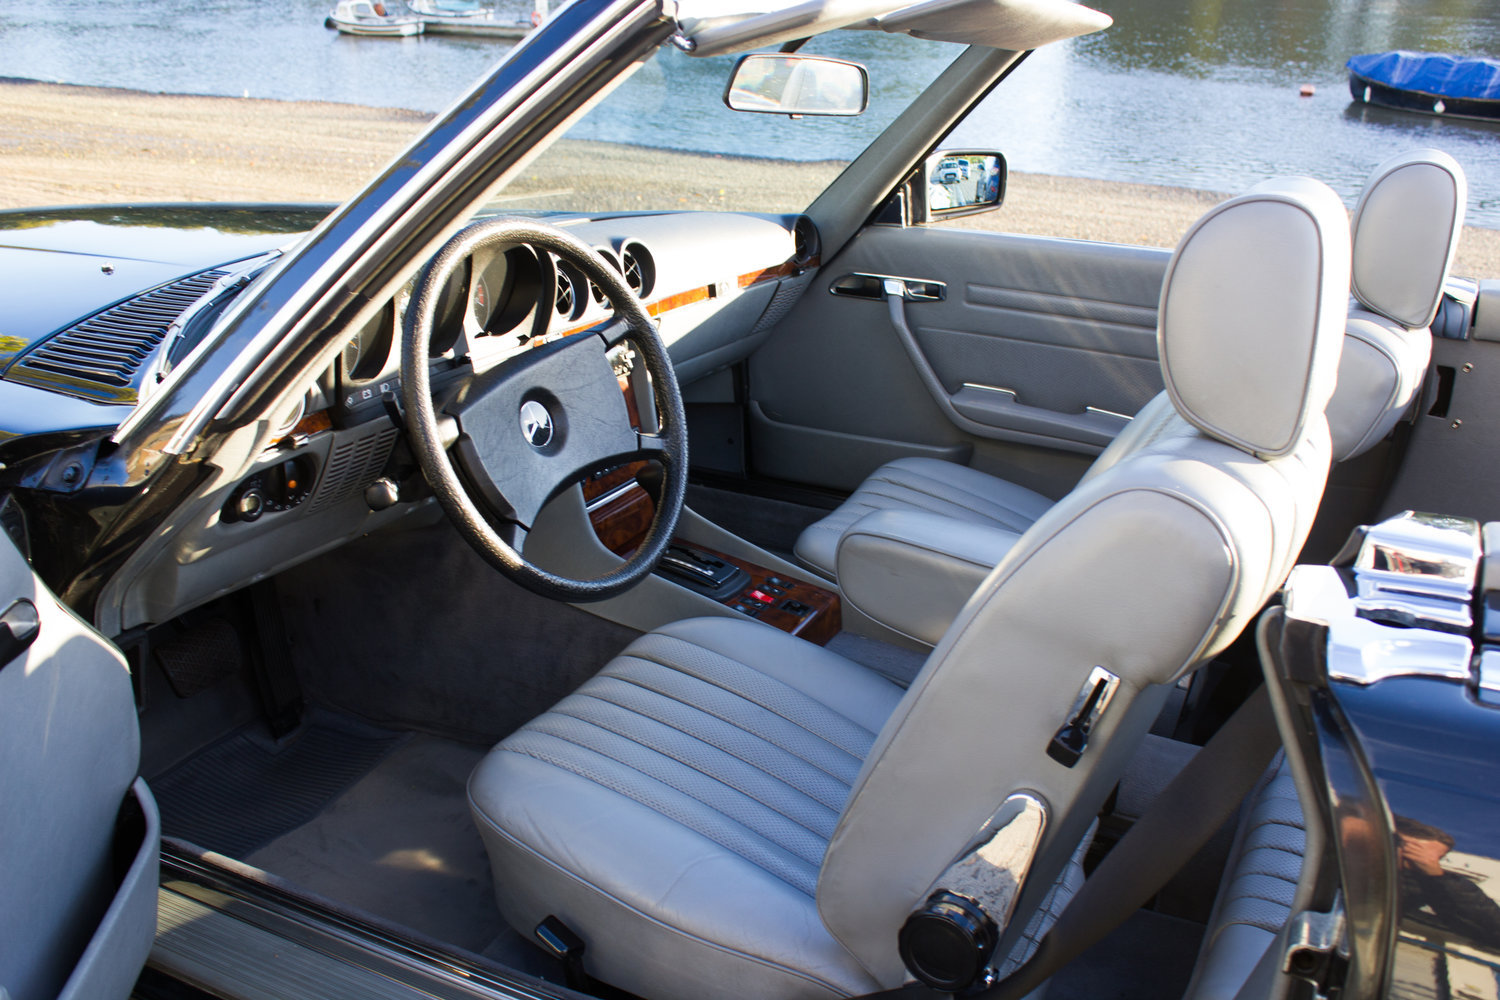 1985 Mercedes-Benz 500SL - LHD, AC, Heated Seats, 43k Miles For Sale (picture 6 of 6)